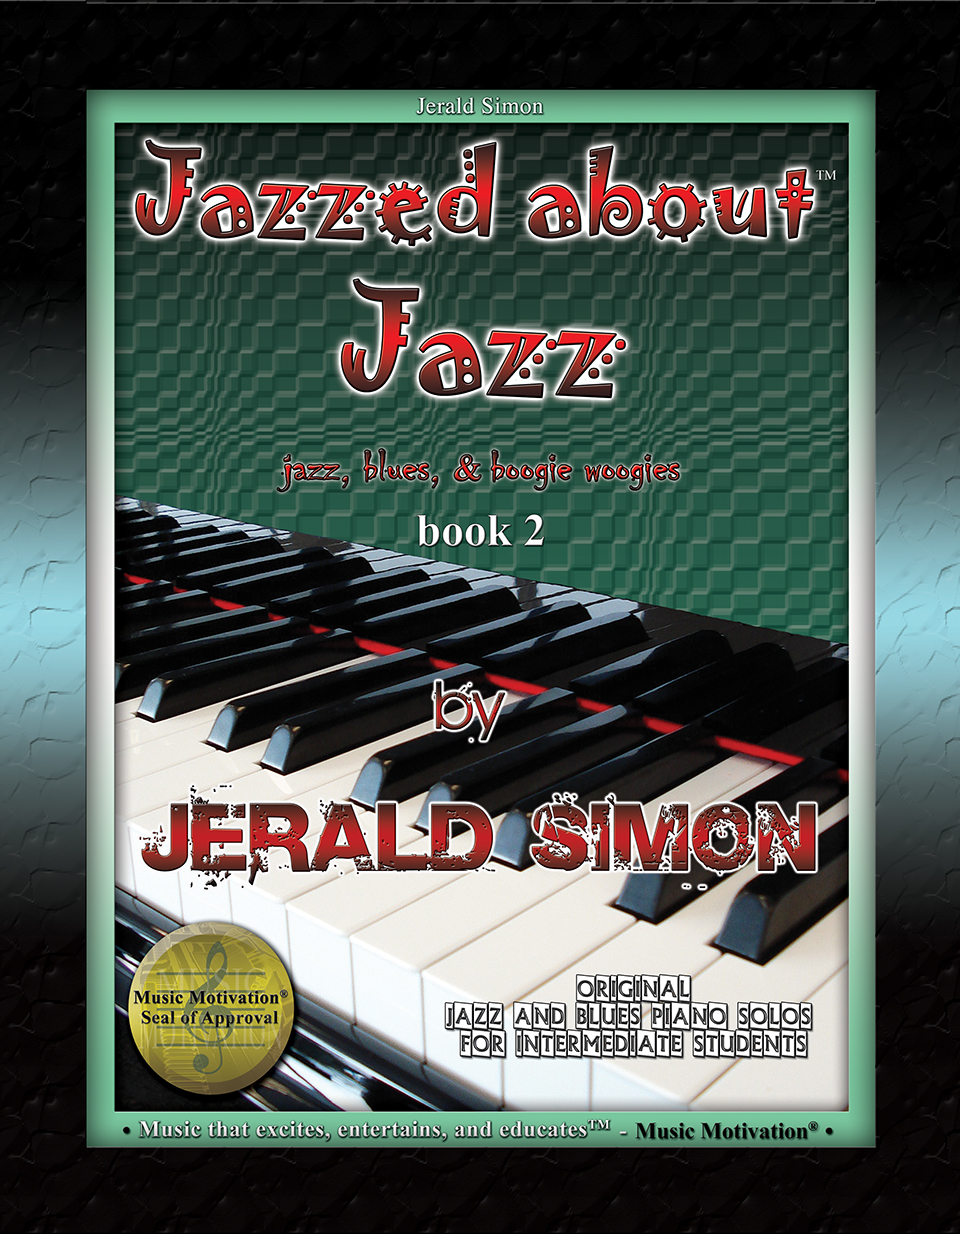 Jazzed about Jazz (book 2) - PDF download (single use license)